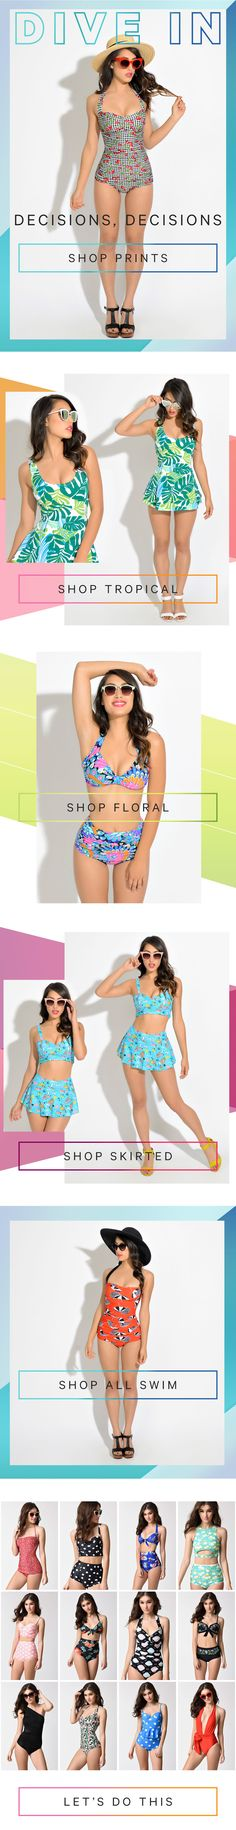 Whatever your swim style, we've got the perfect suit. Don't believe us? See for yourself!